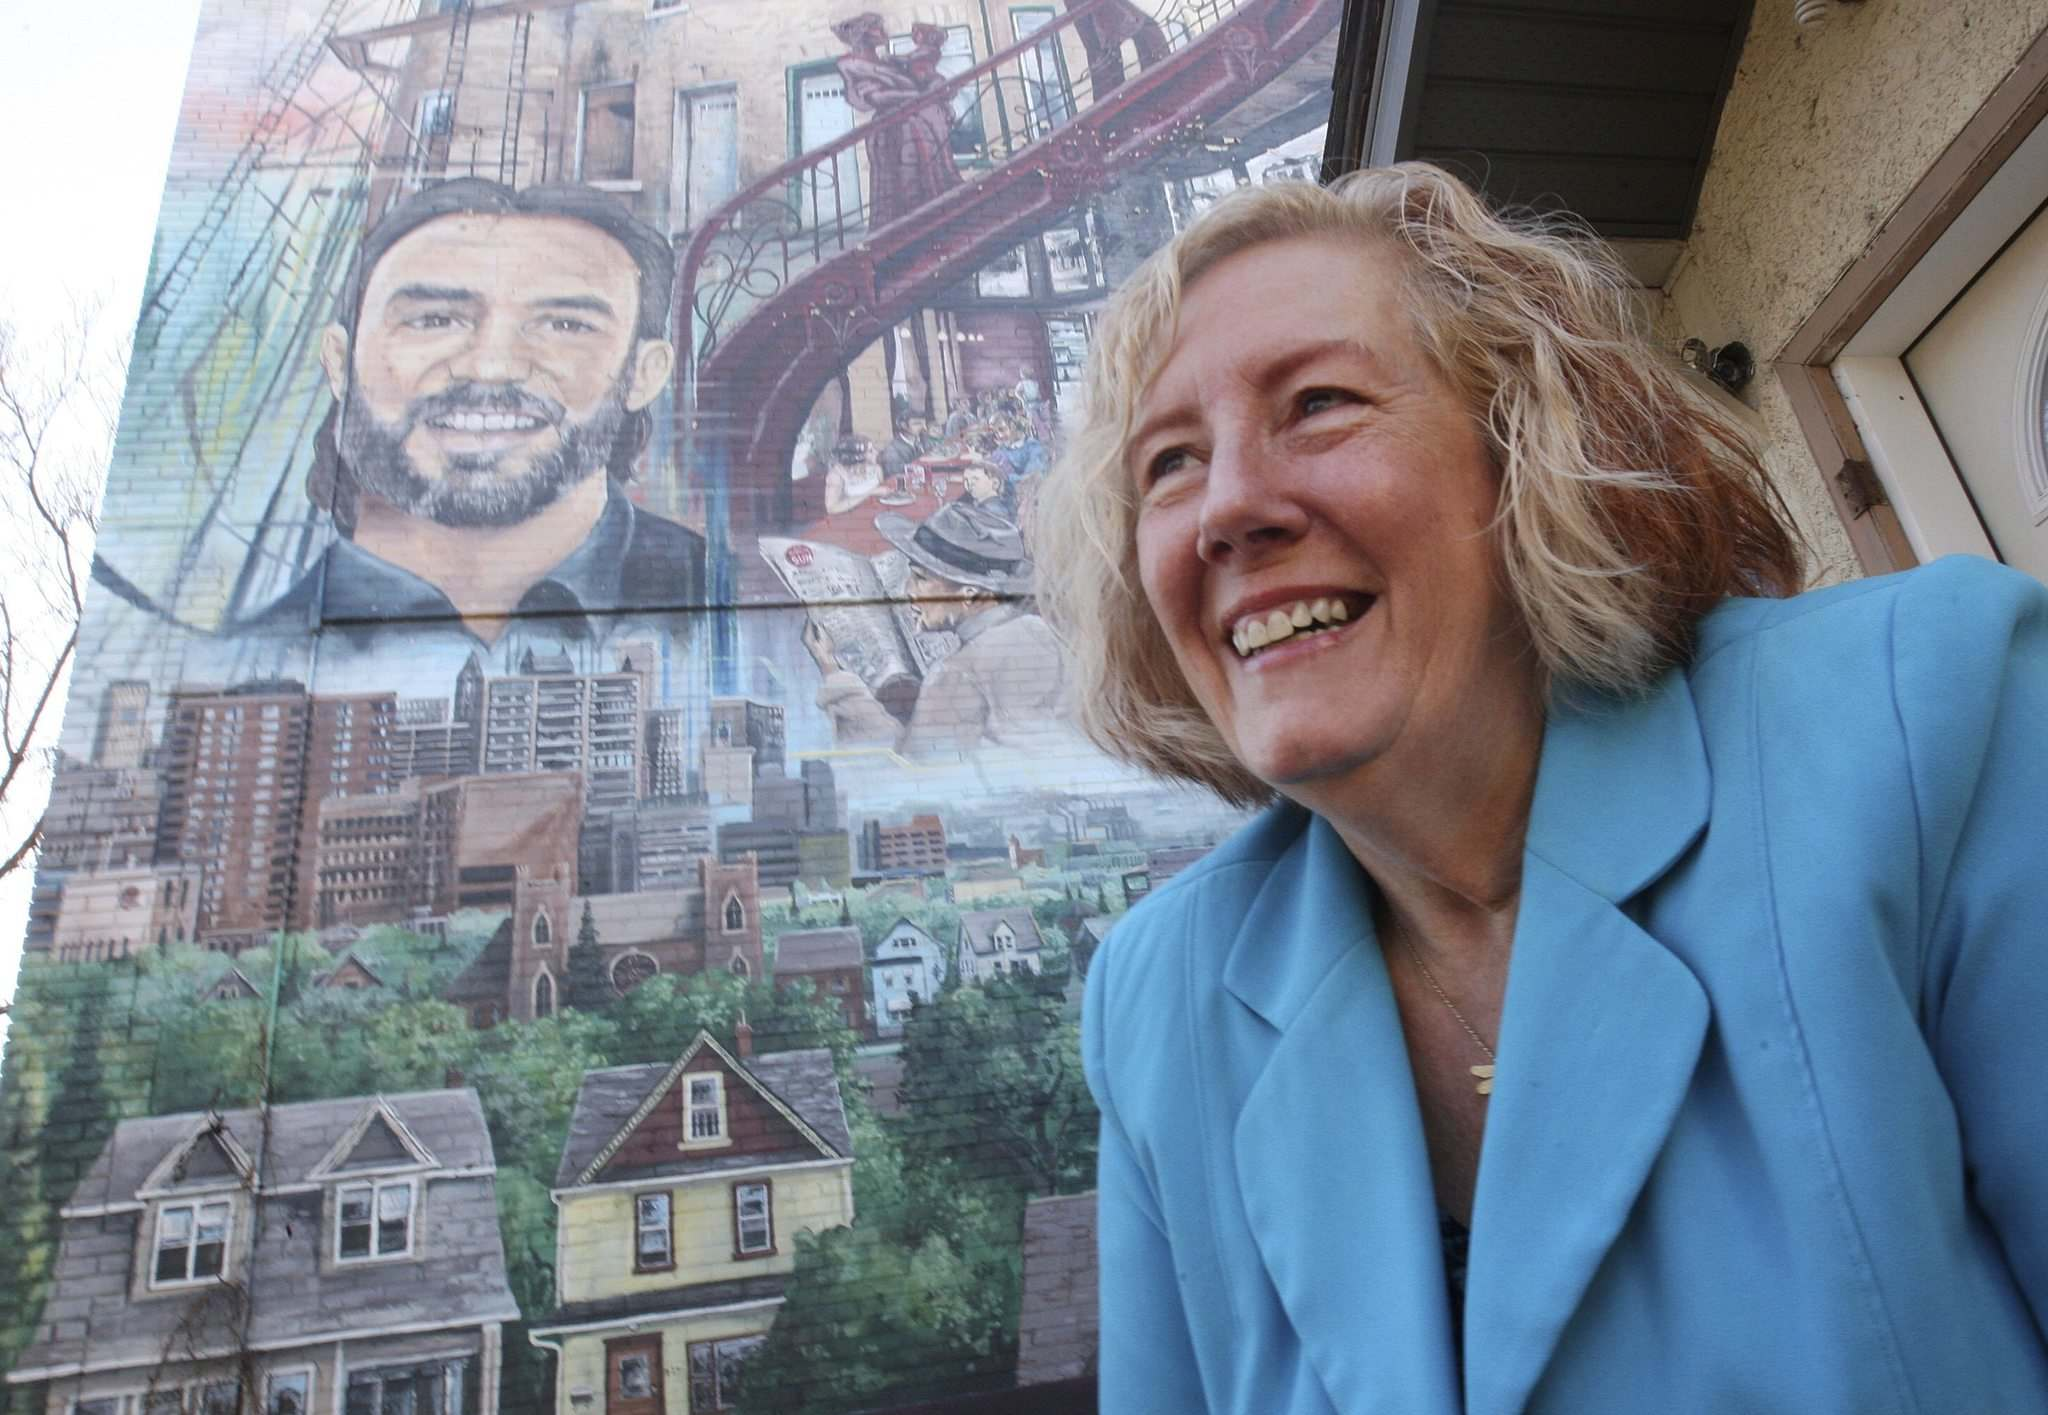 JOE BRYKSA / WINNIPEG FREE PRESS</p><p>Former executive director of the West End BIZ Trudy Turner says Lehotsky loved the mural that features his likeness on Maryland Street. It was the final project Turner completed with Lehotsky.</p>